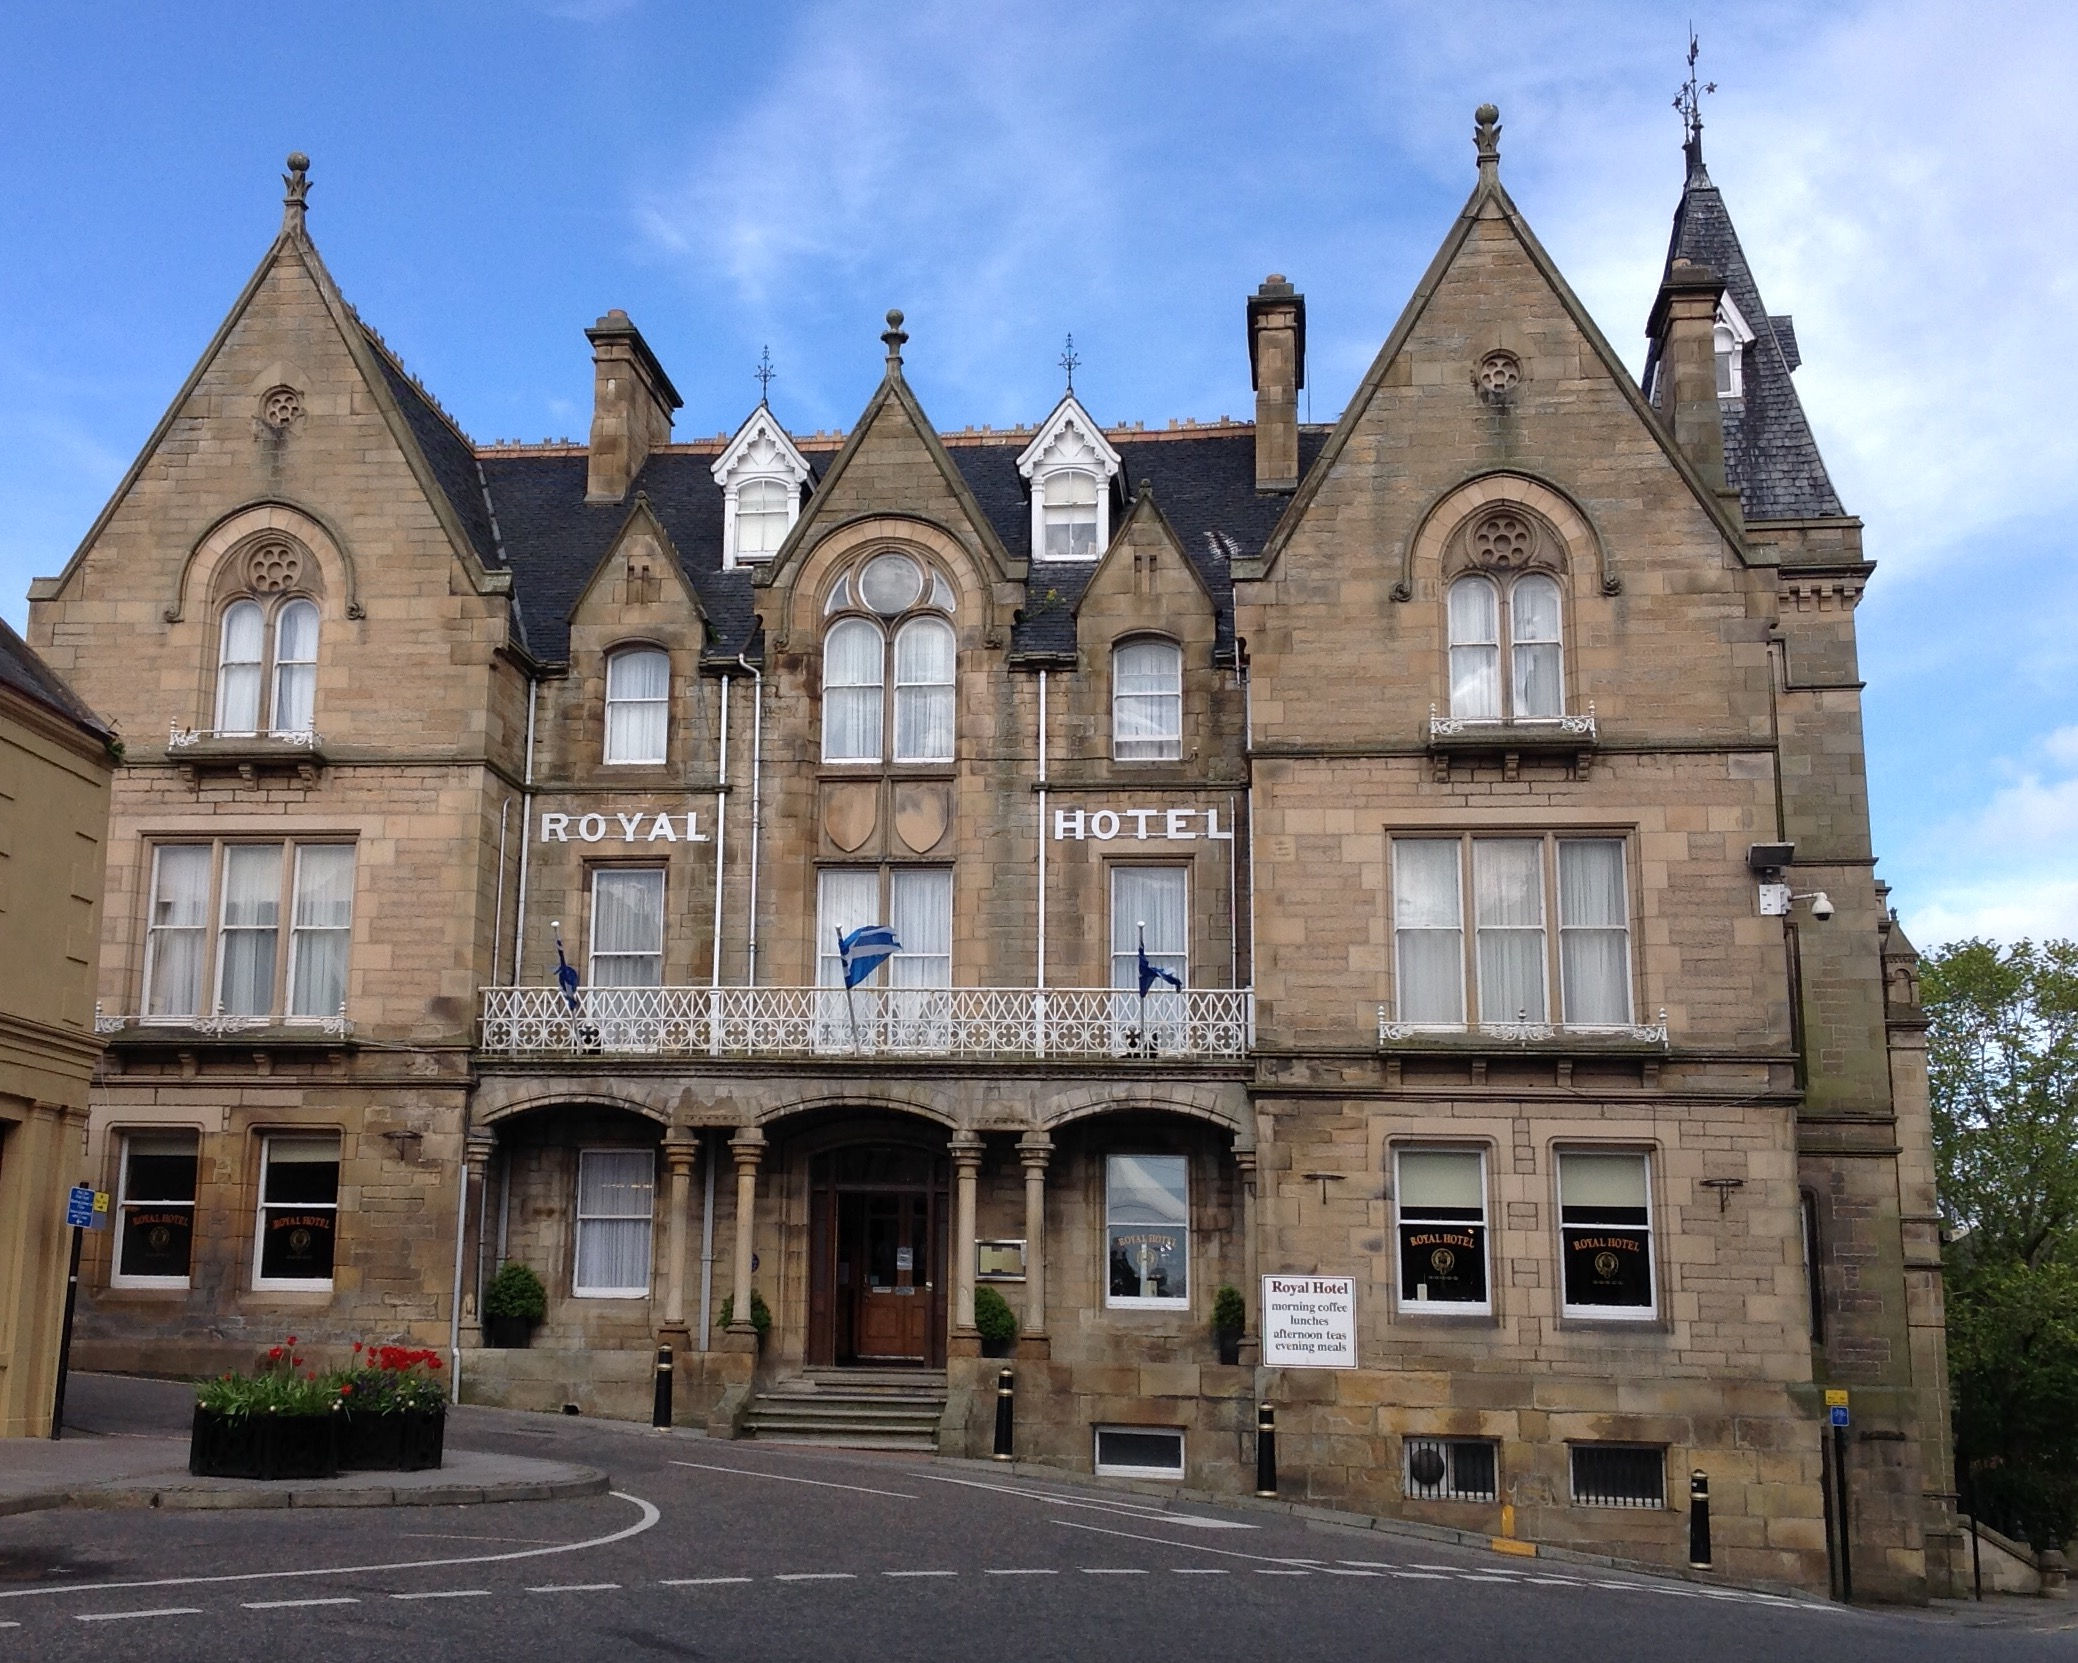 The Royal Tain Hotel